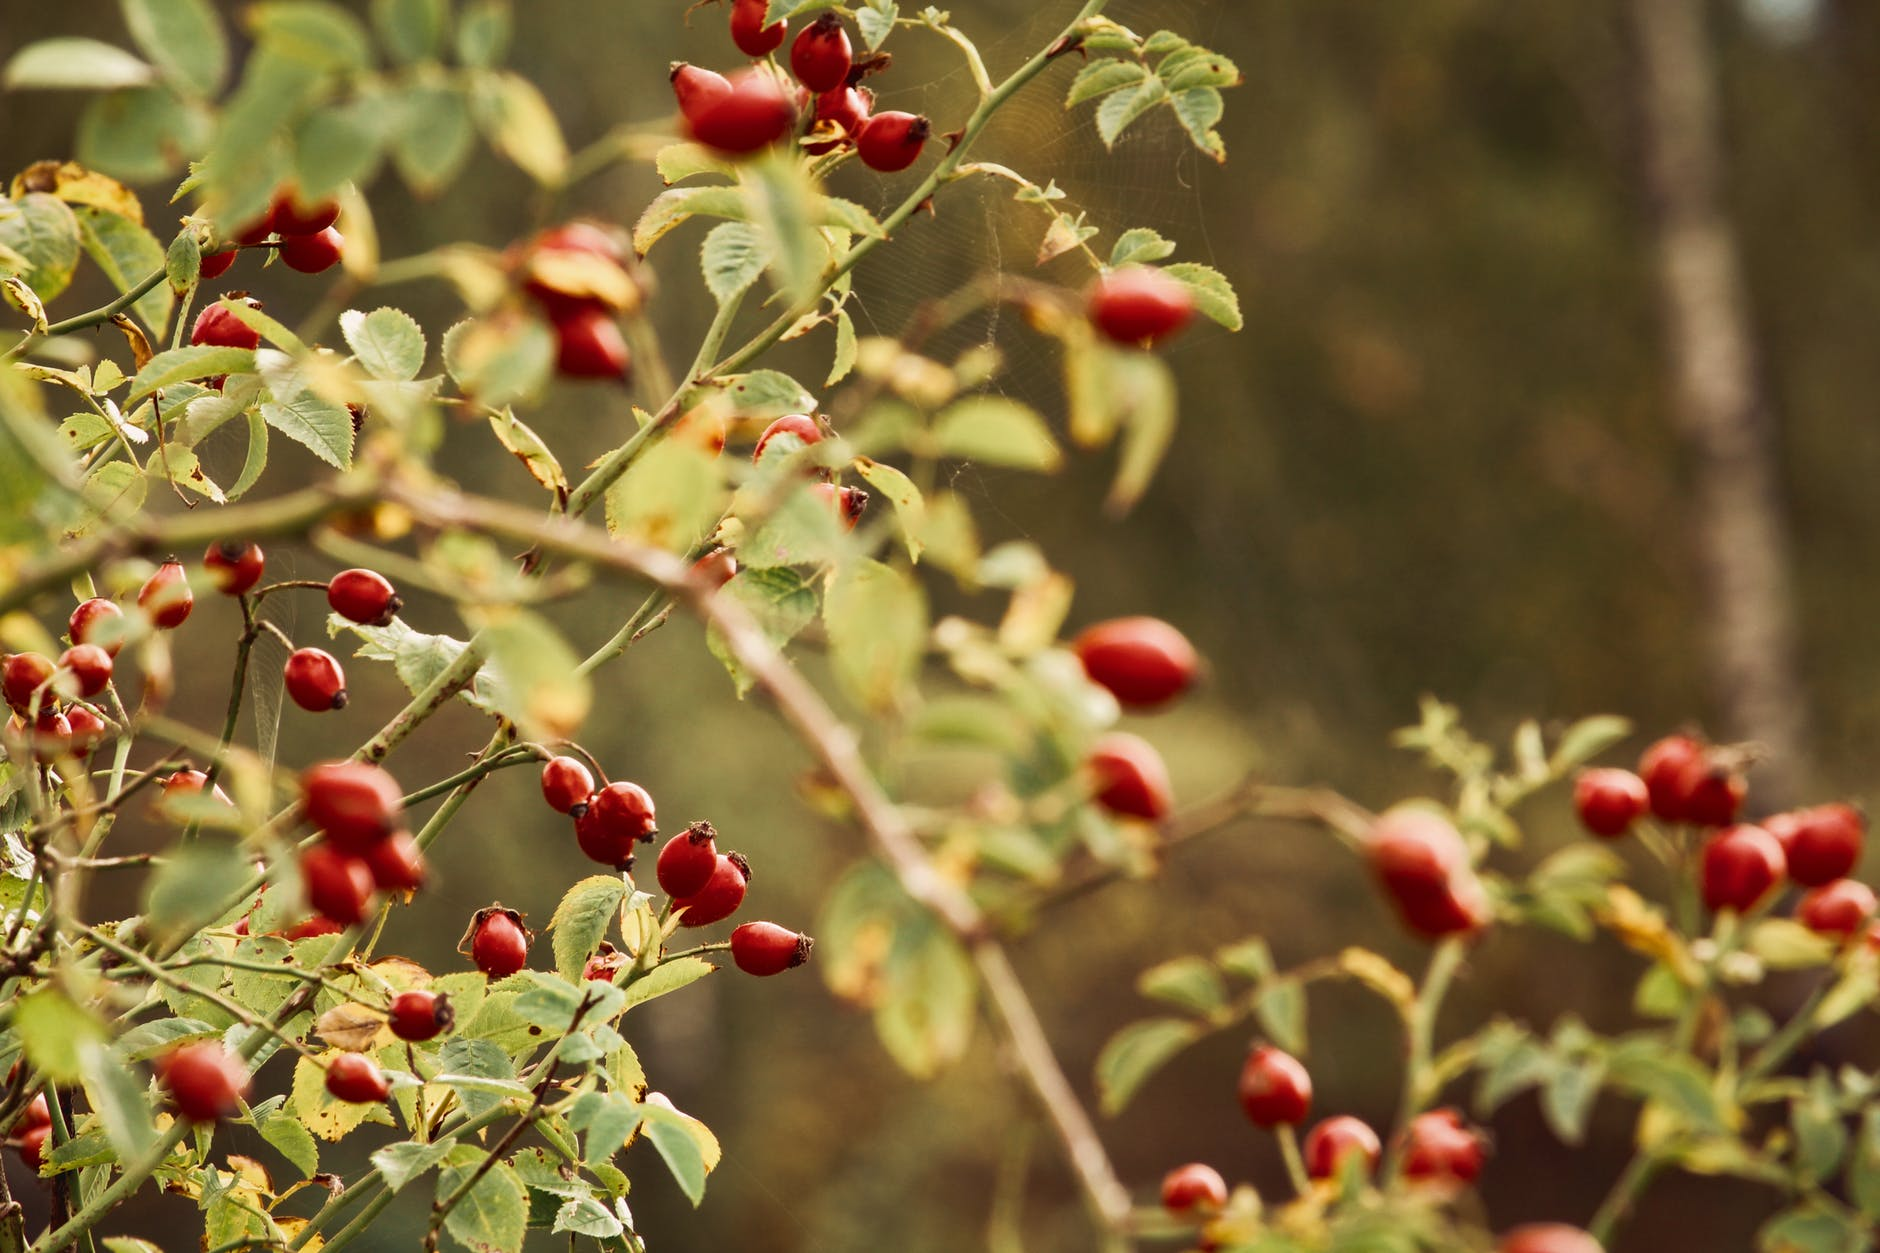 rosehips on branch